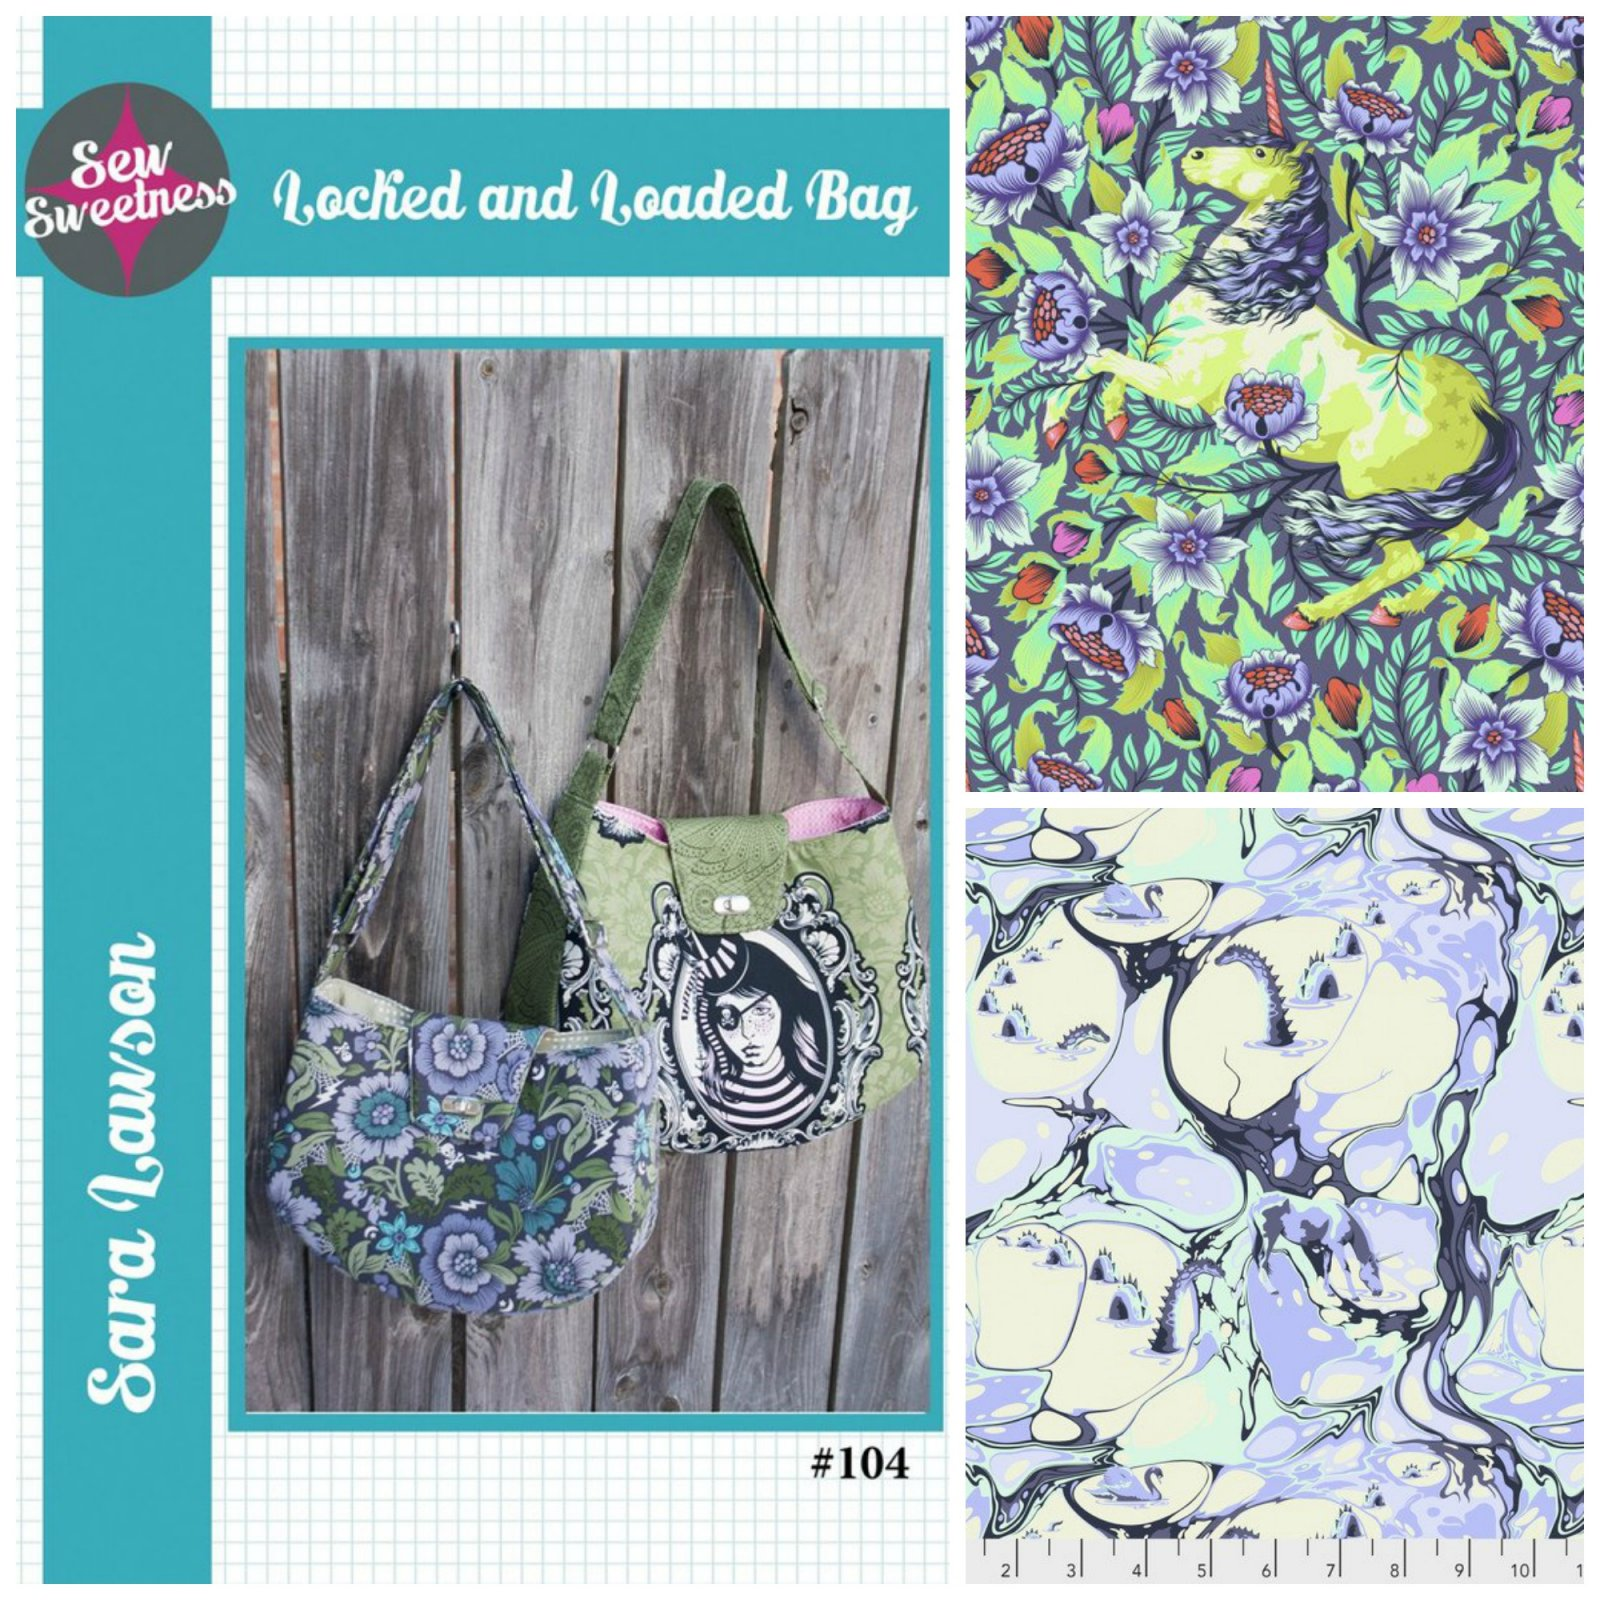 Sew Sweetness- Locked and Loaded Bag (Kit featuring Pinkerville in Daydream by Tula Pink)